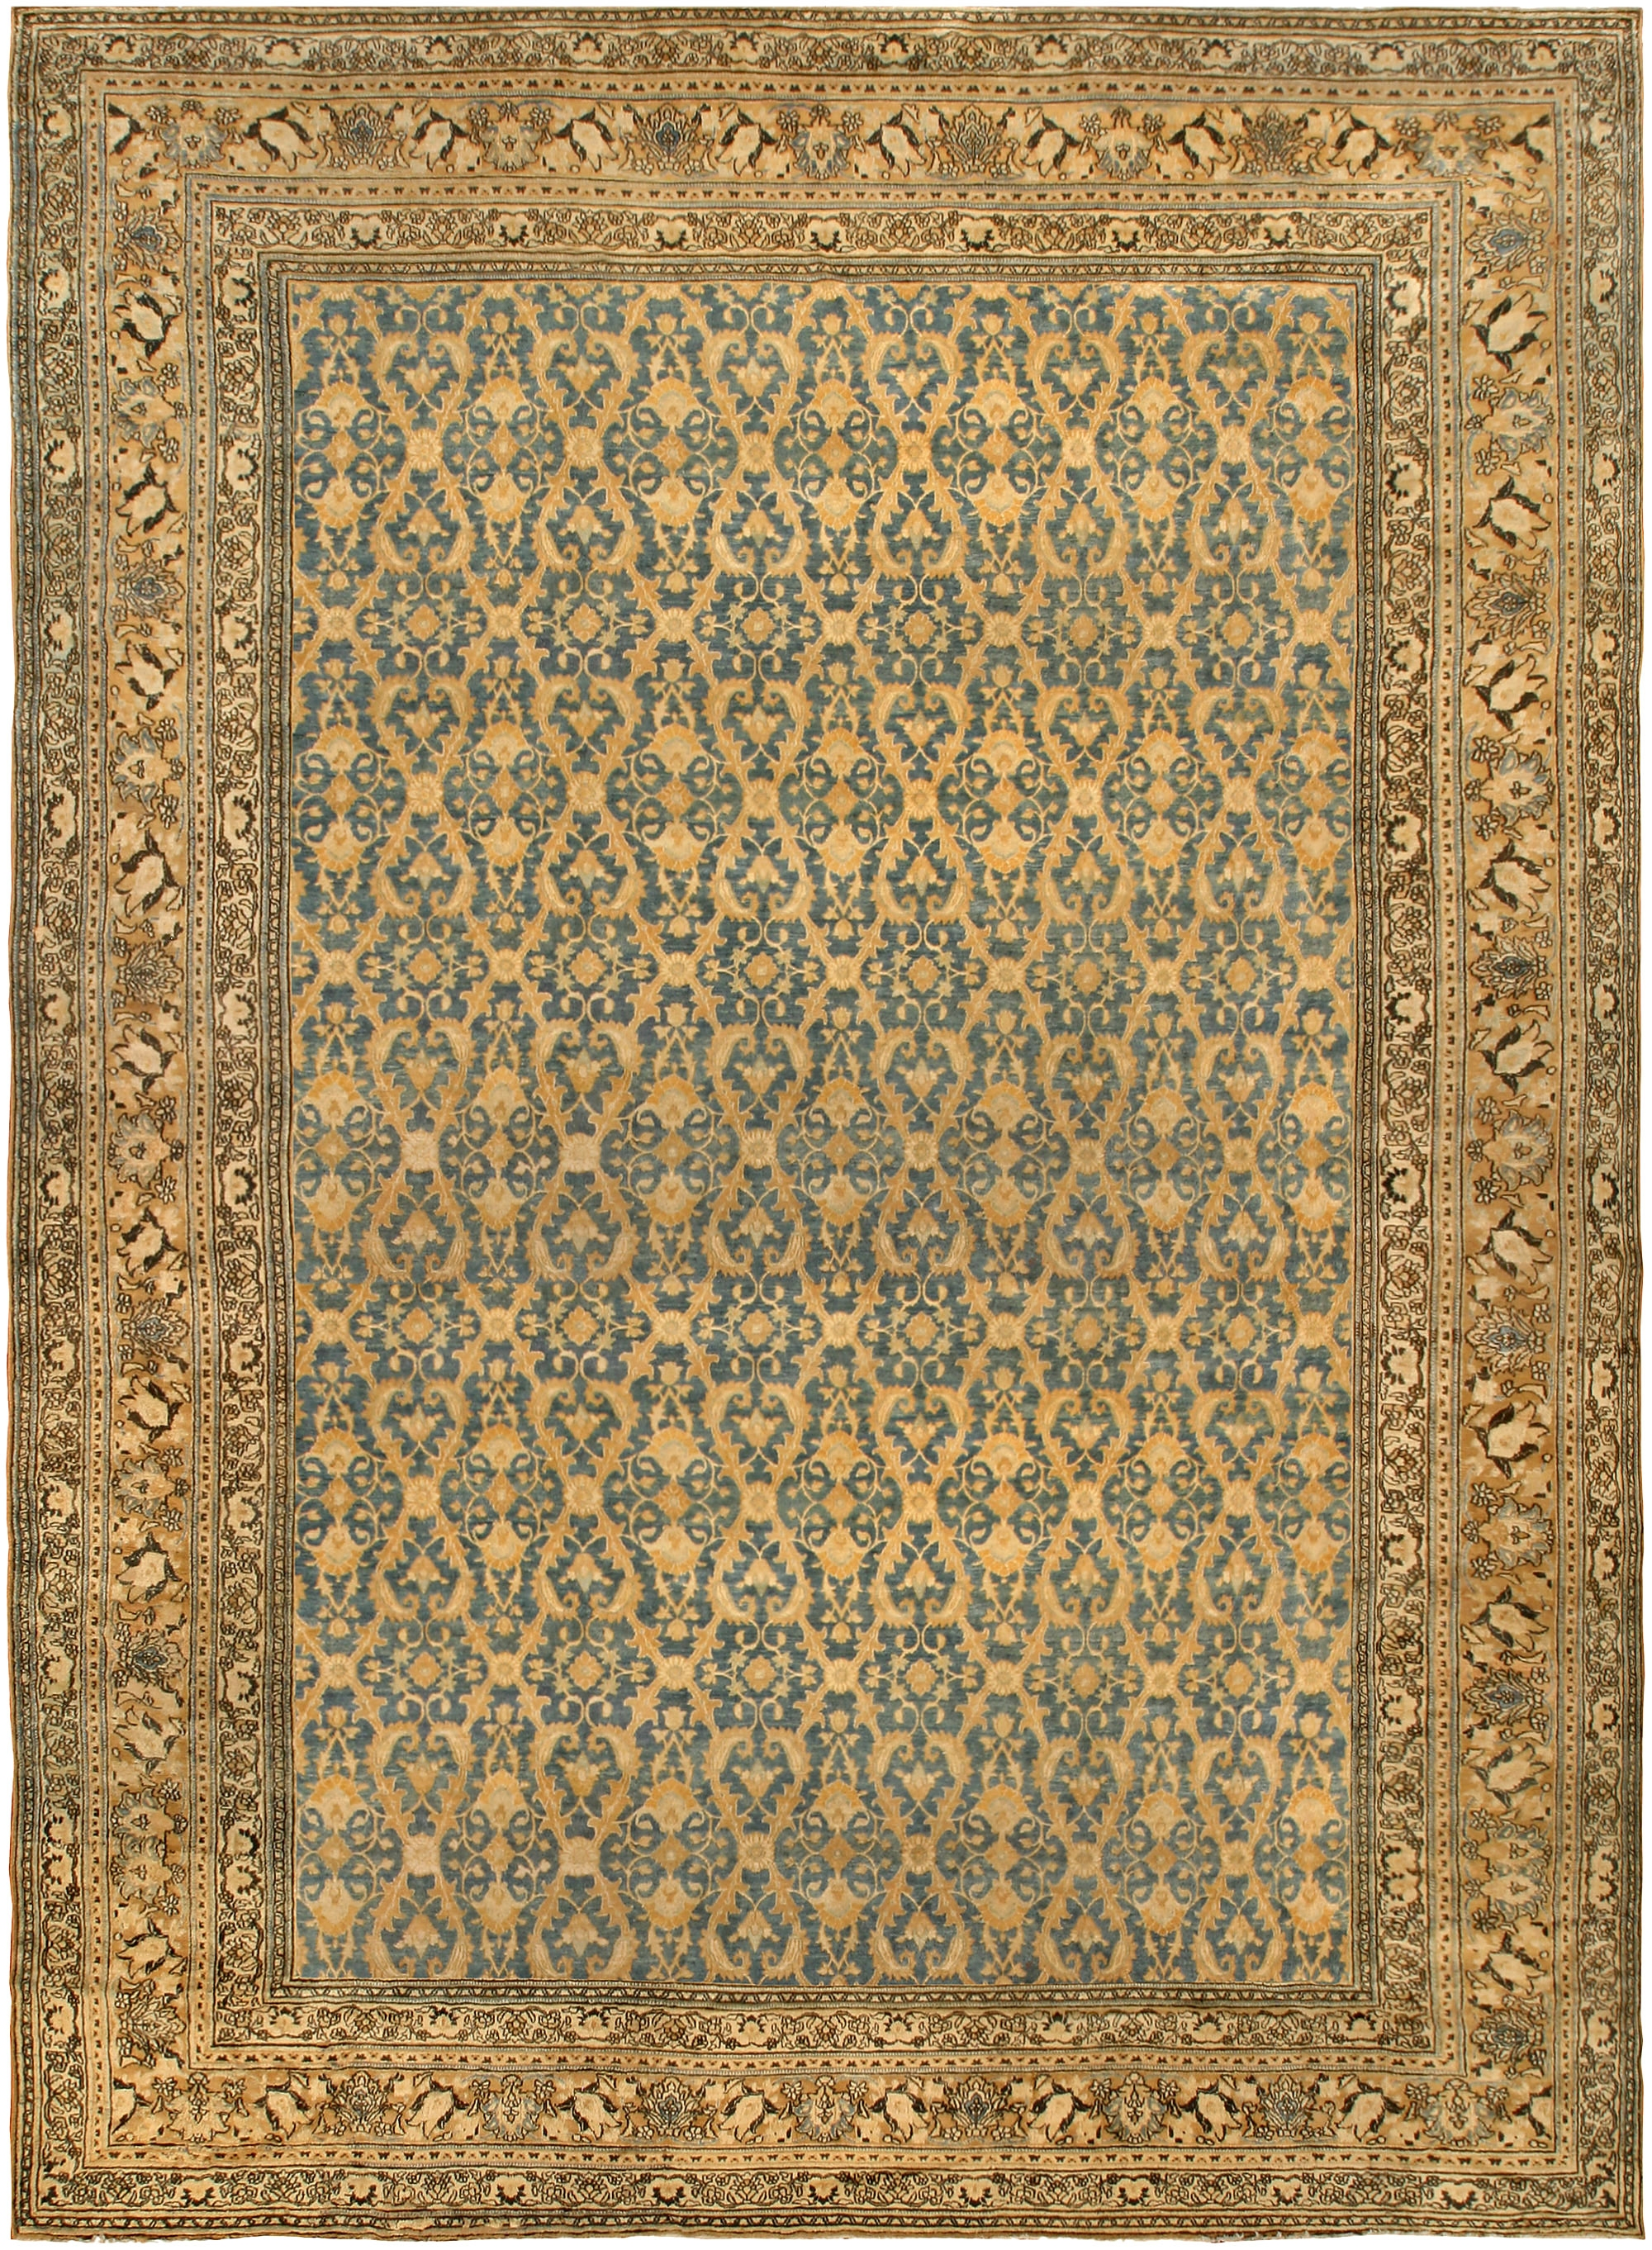 Antique Rugs From Doris Leslie Blau New York Antique Carpets Pertaining To Green Persian Rugs (Image 2 of 15)